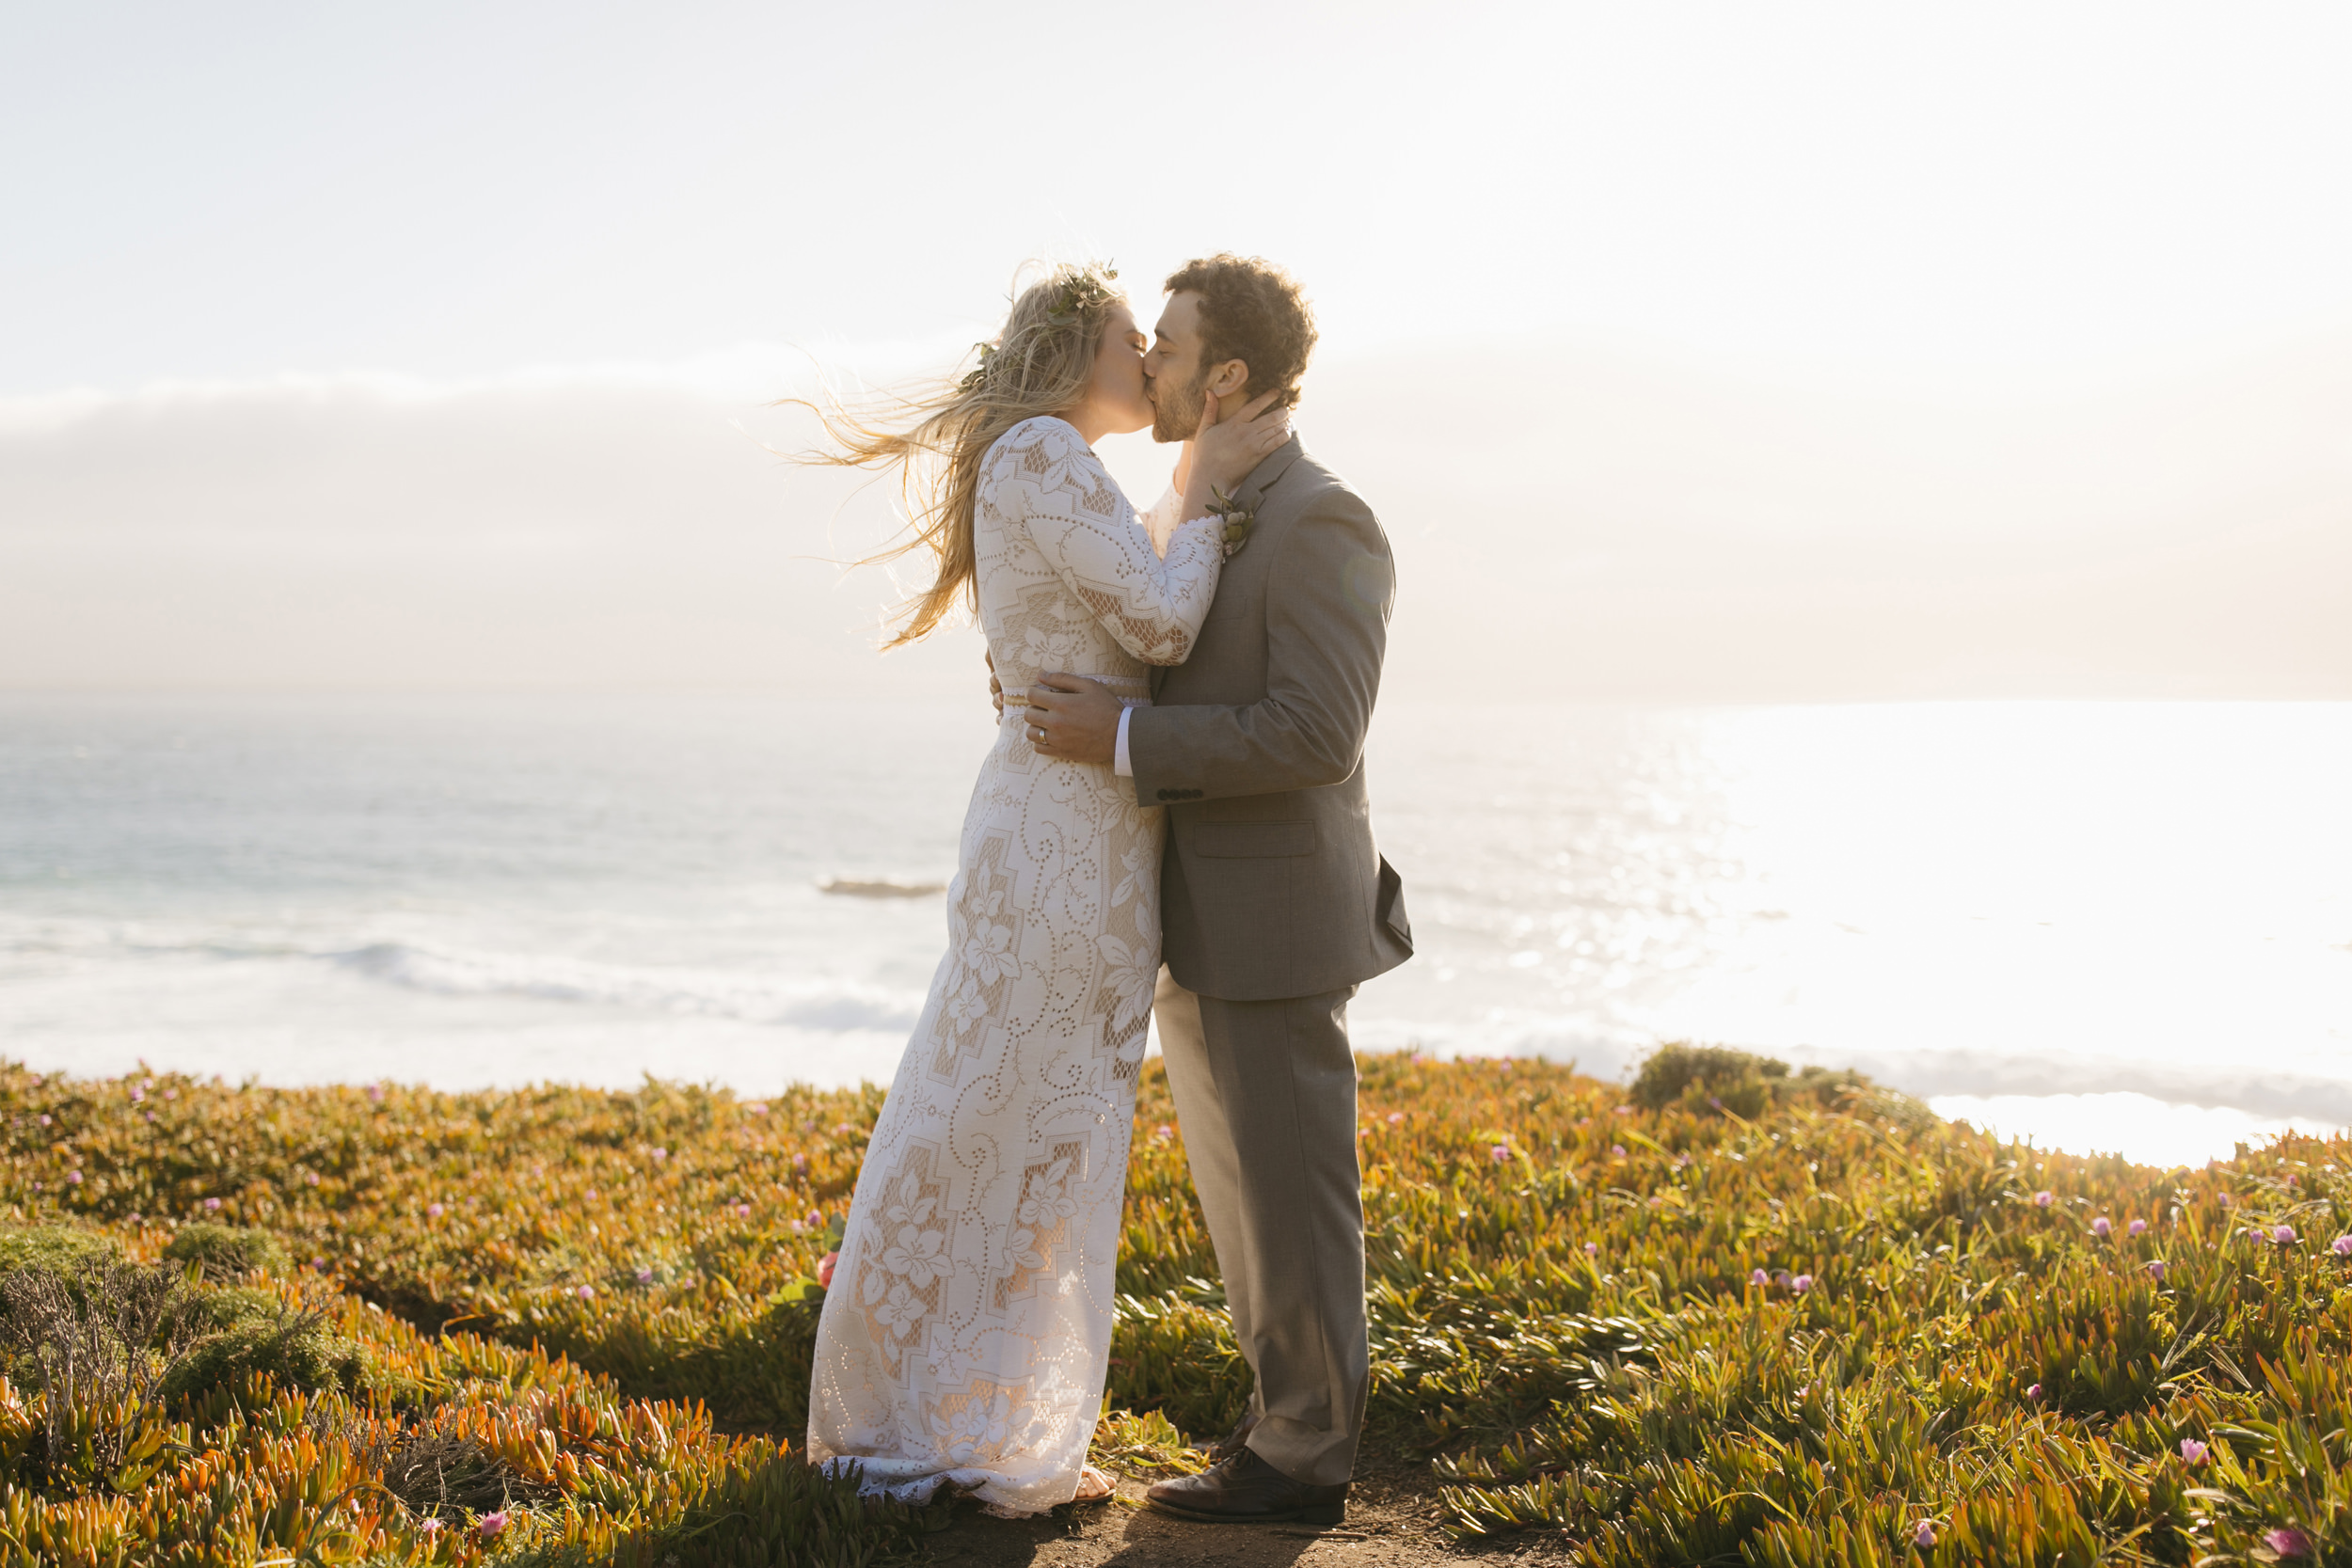 big-sur-elopement-california-adventure-wedding-photographer 173.JPG